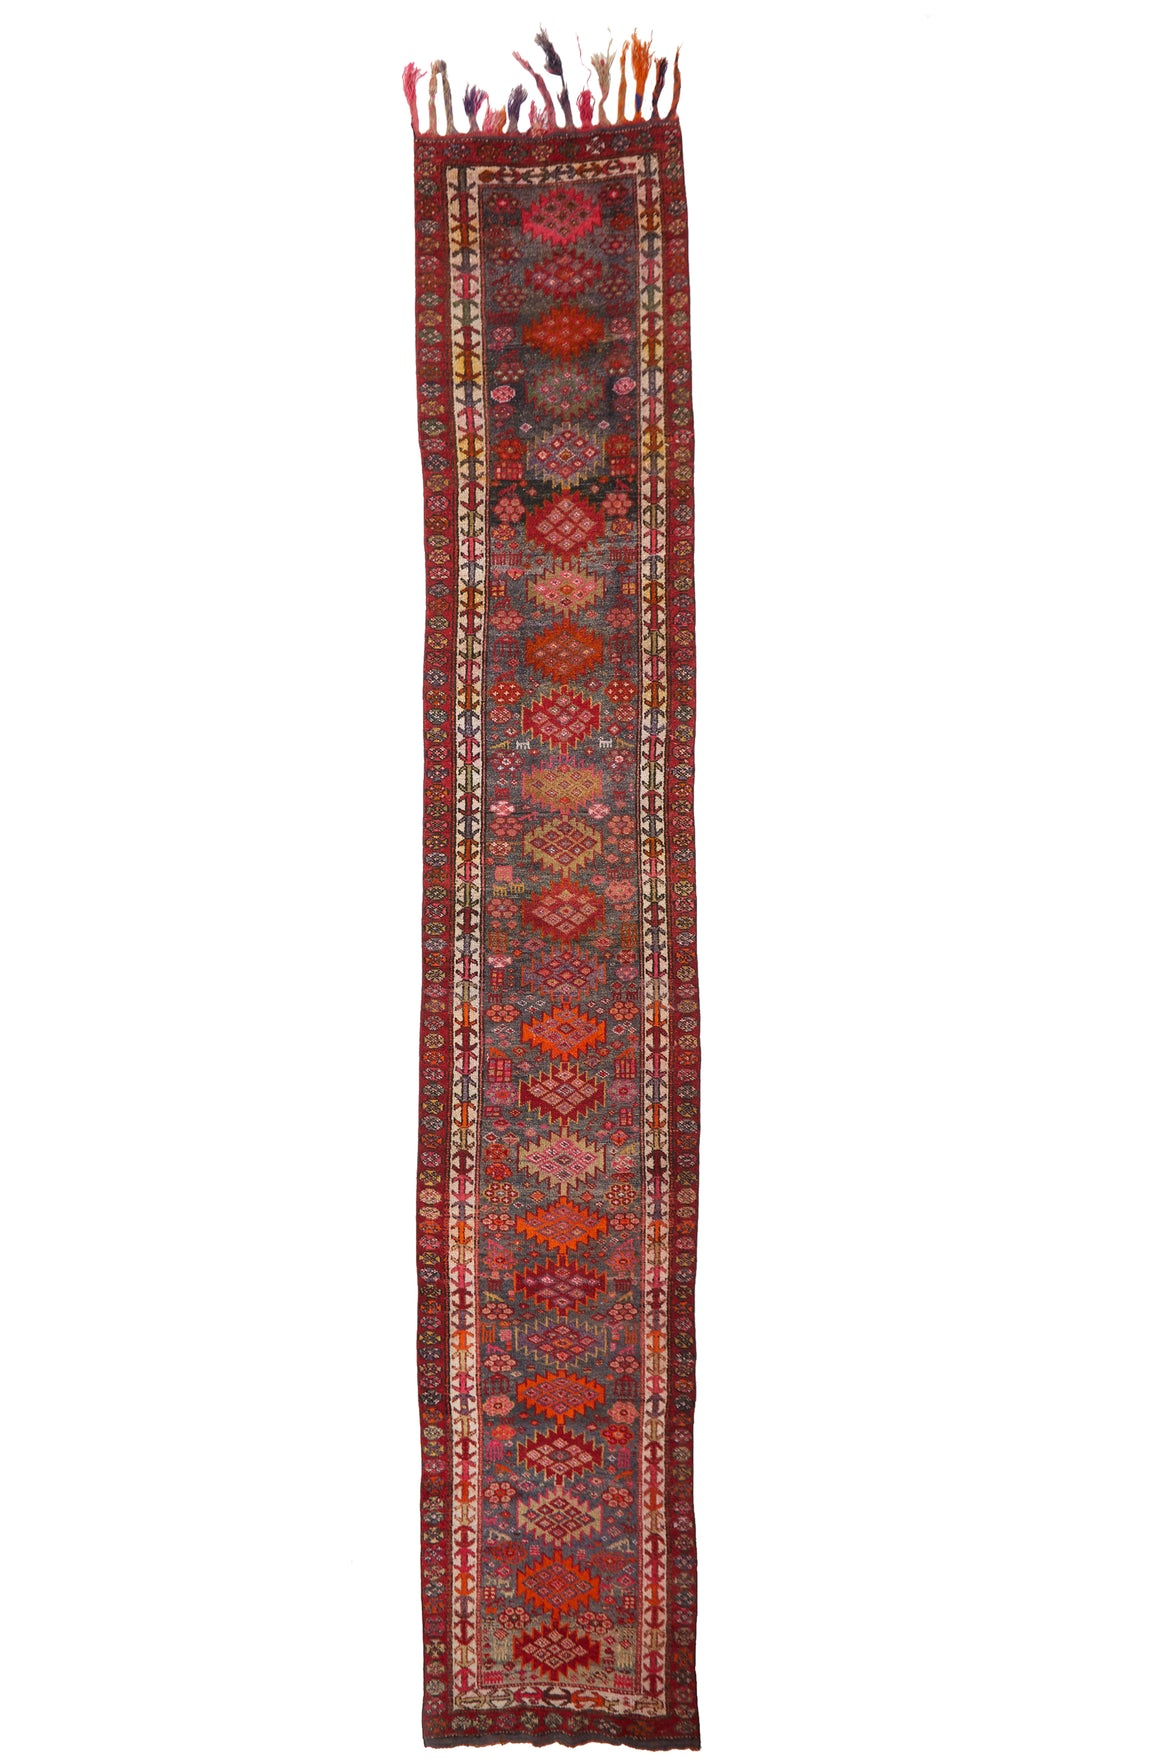 'Mulberry' Vintage Turkish Long Runner - 3' x 18' - Canary Lane - Curated Textiles